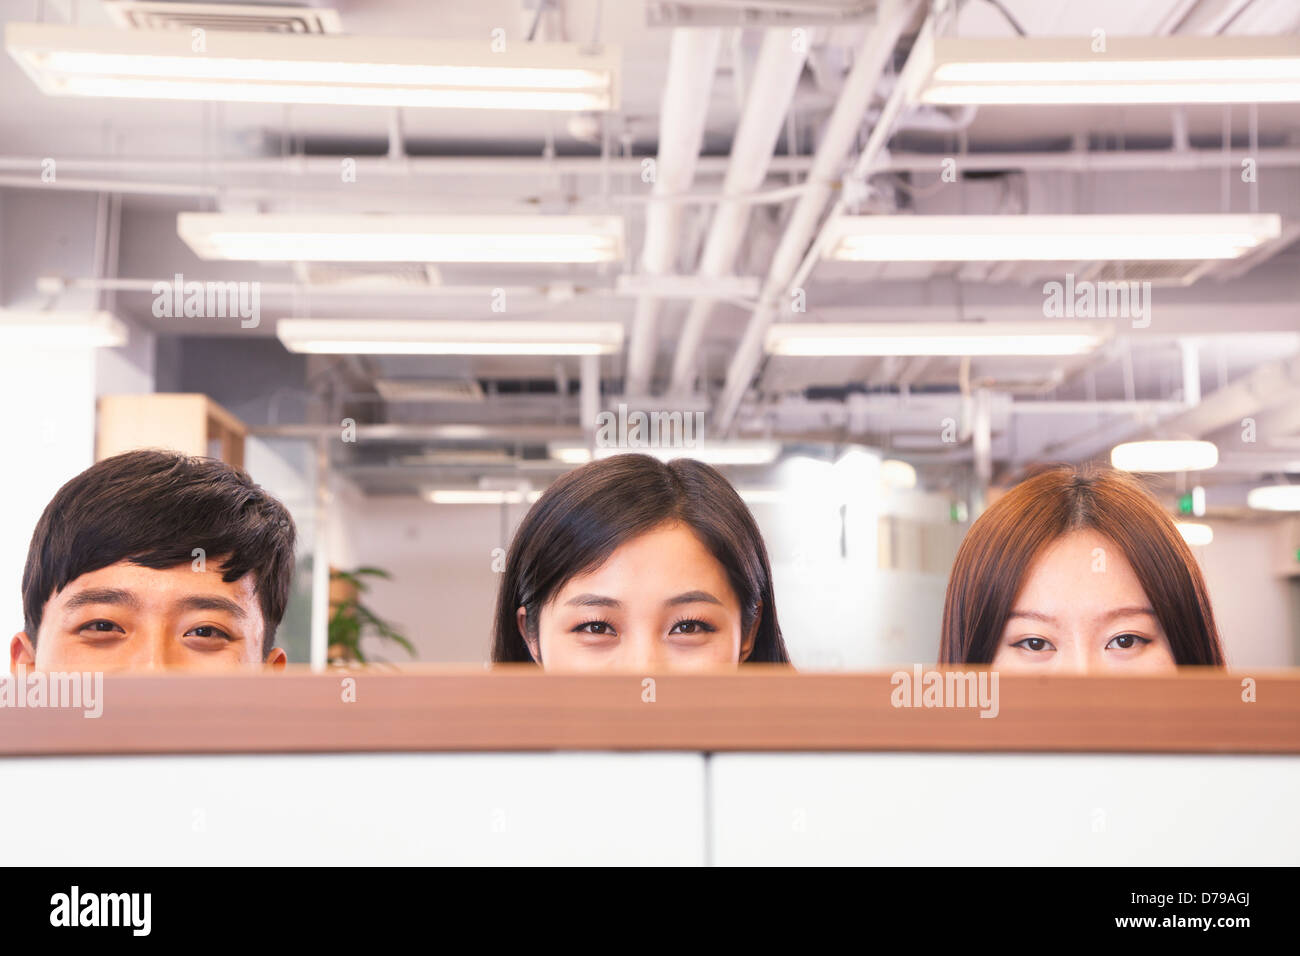 Office workers peeking over divider in office - Stock Image